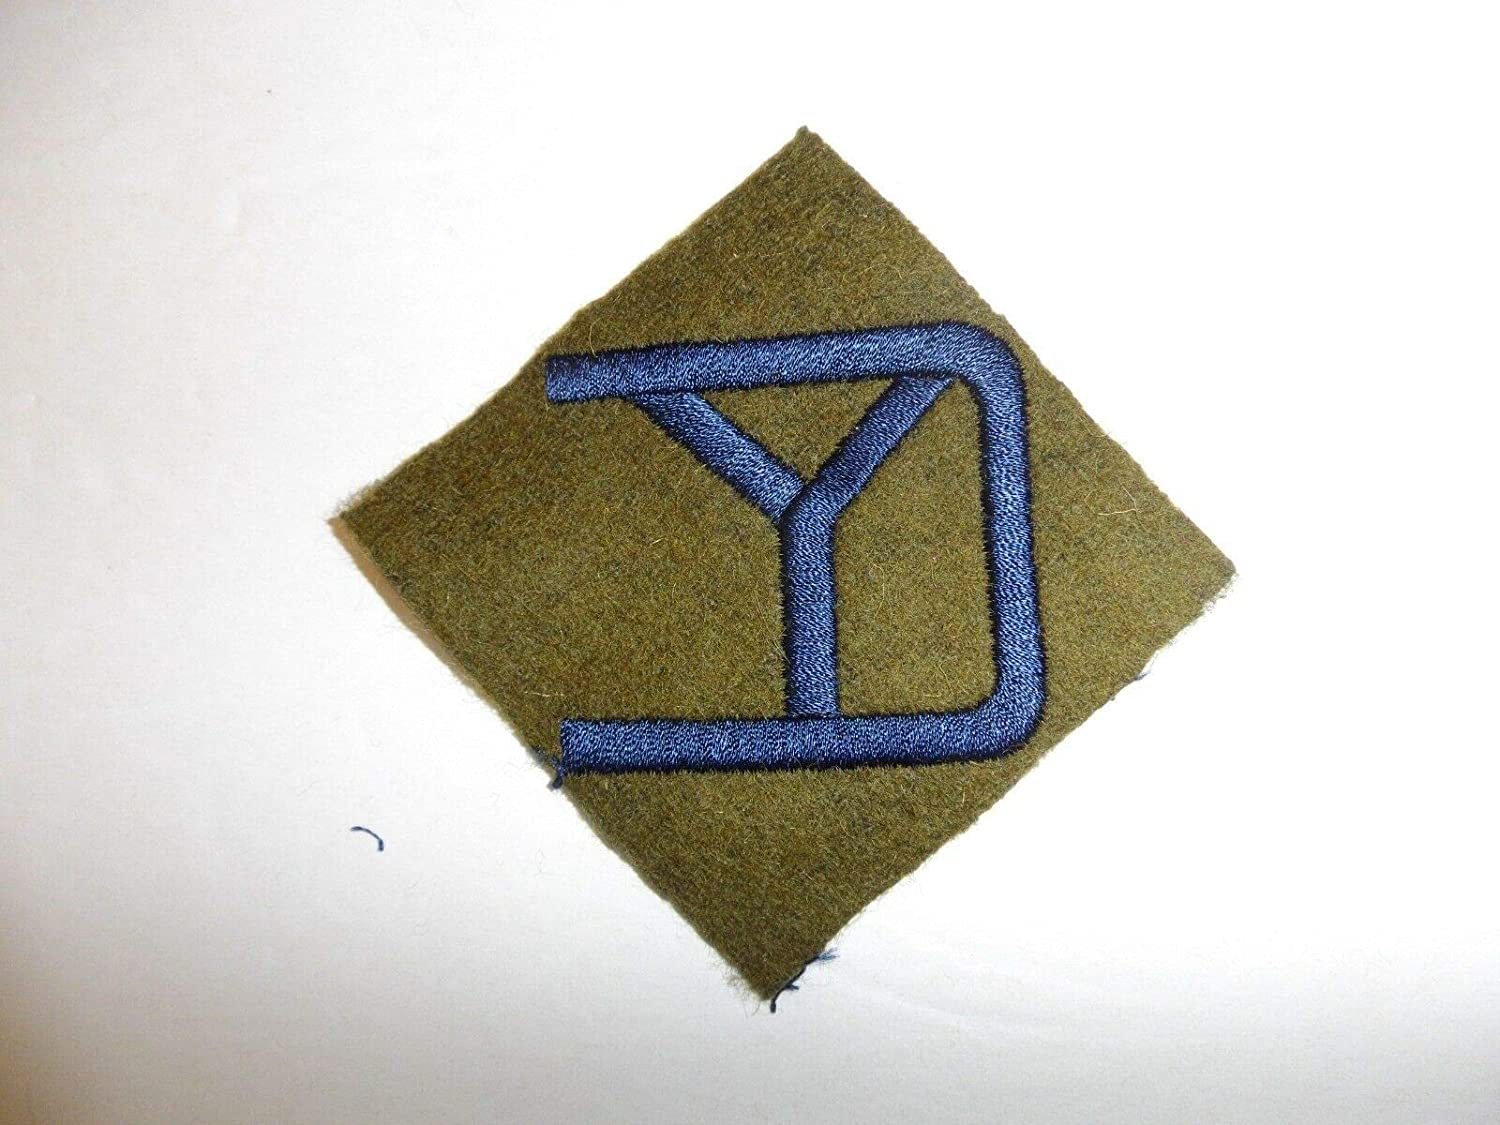 Vintage Reproduction b9810 US Army 26th Infantry Division Financial sales sale Outlet ☆ Free Shipping 1930's